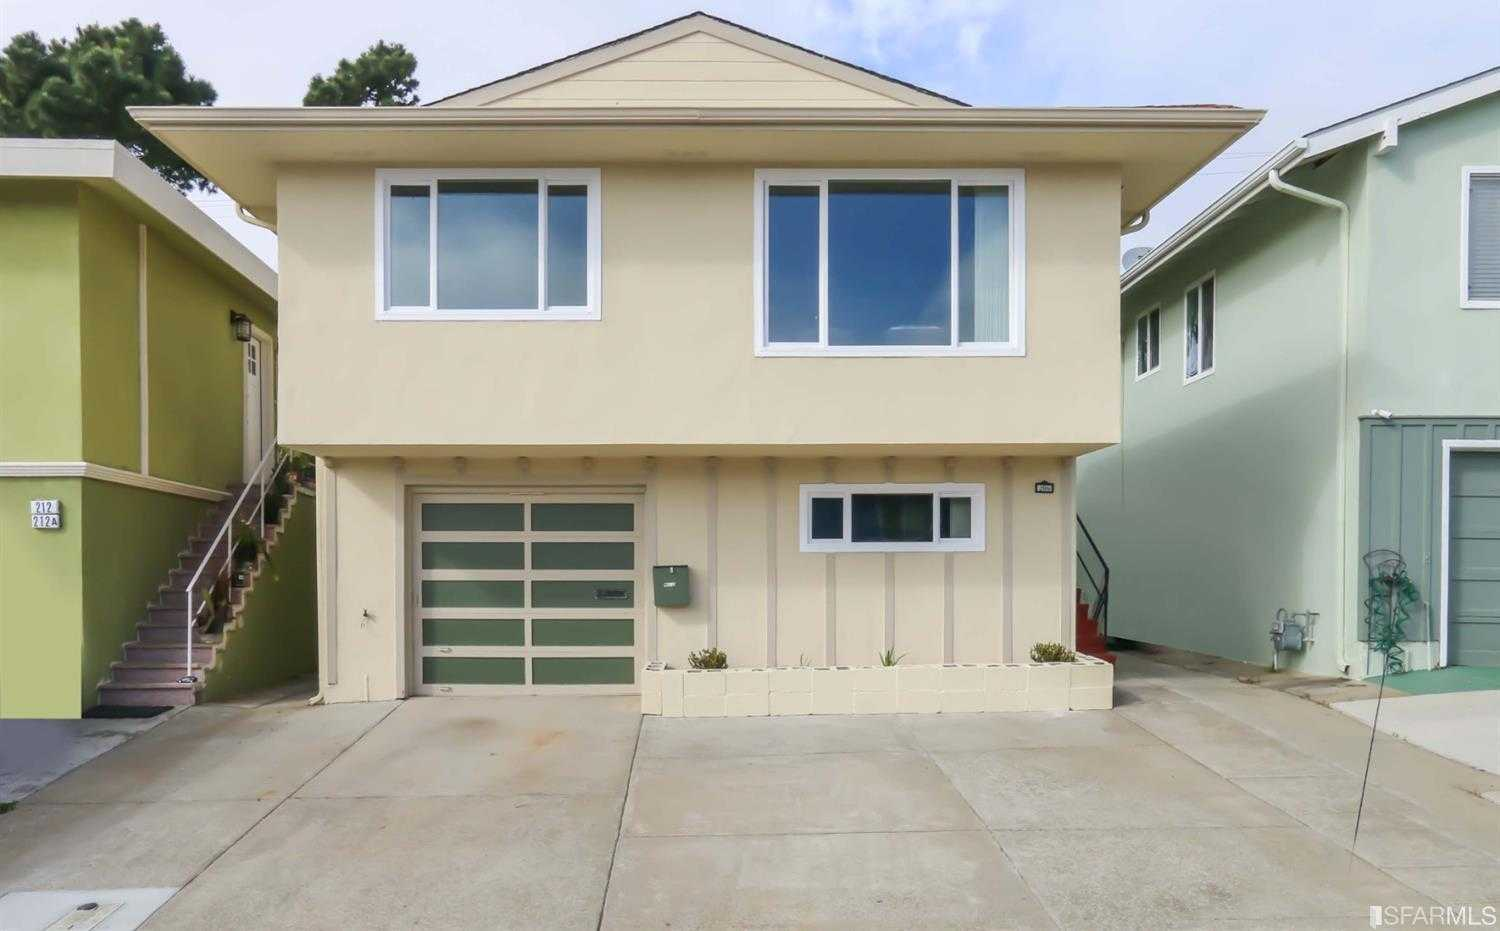 $1,048,000 - 4Br/3Ba -  for Sale in Daly City